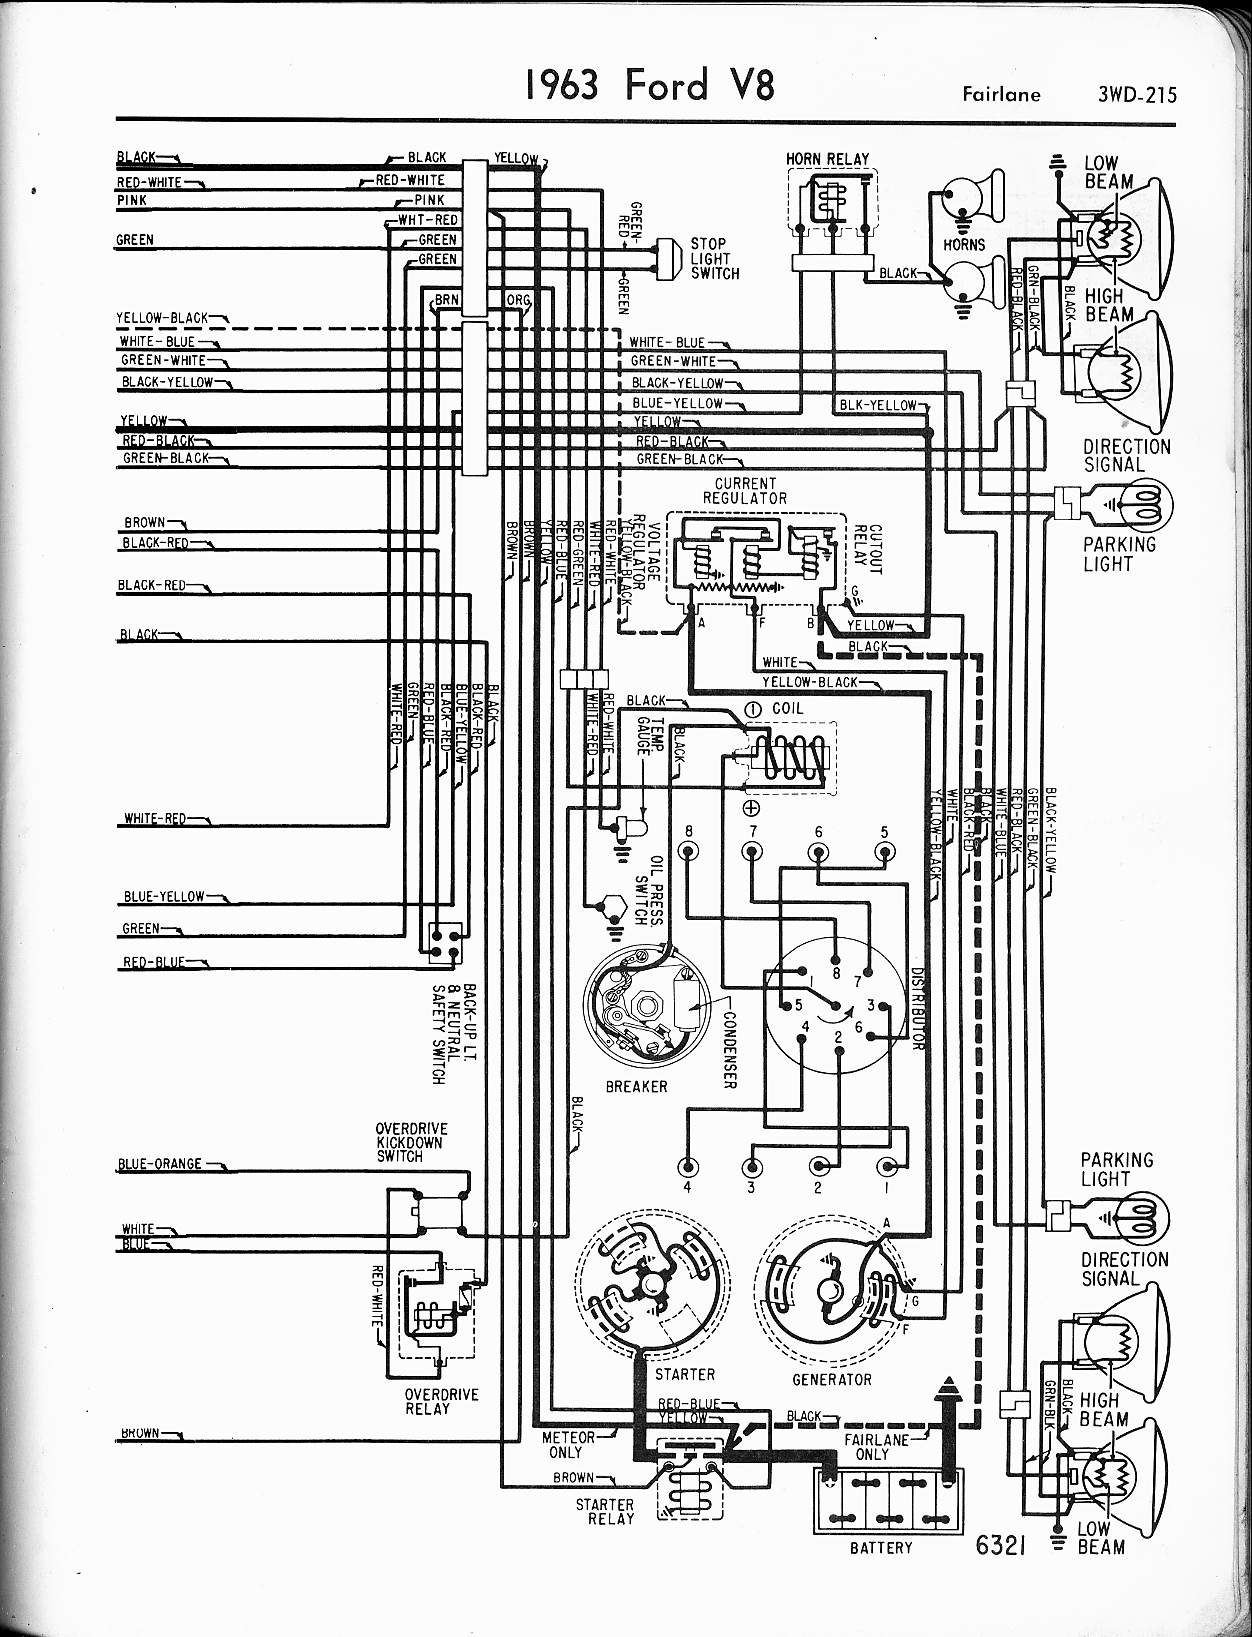 1963 Falcon Wiring Diagram - Wiring Diagram Article